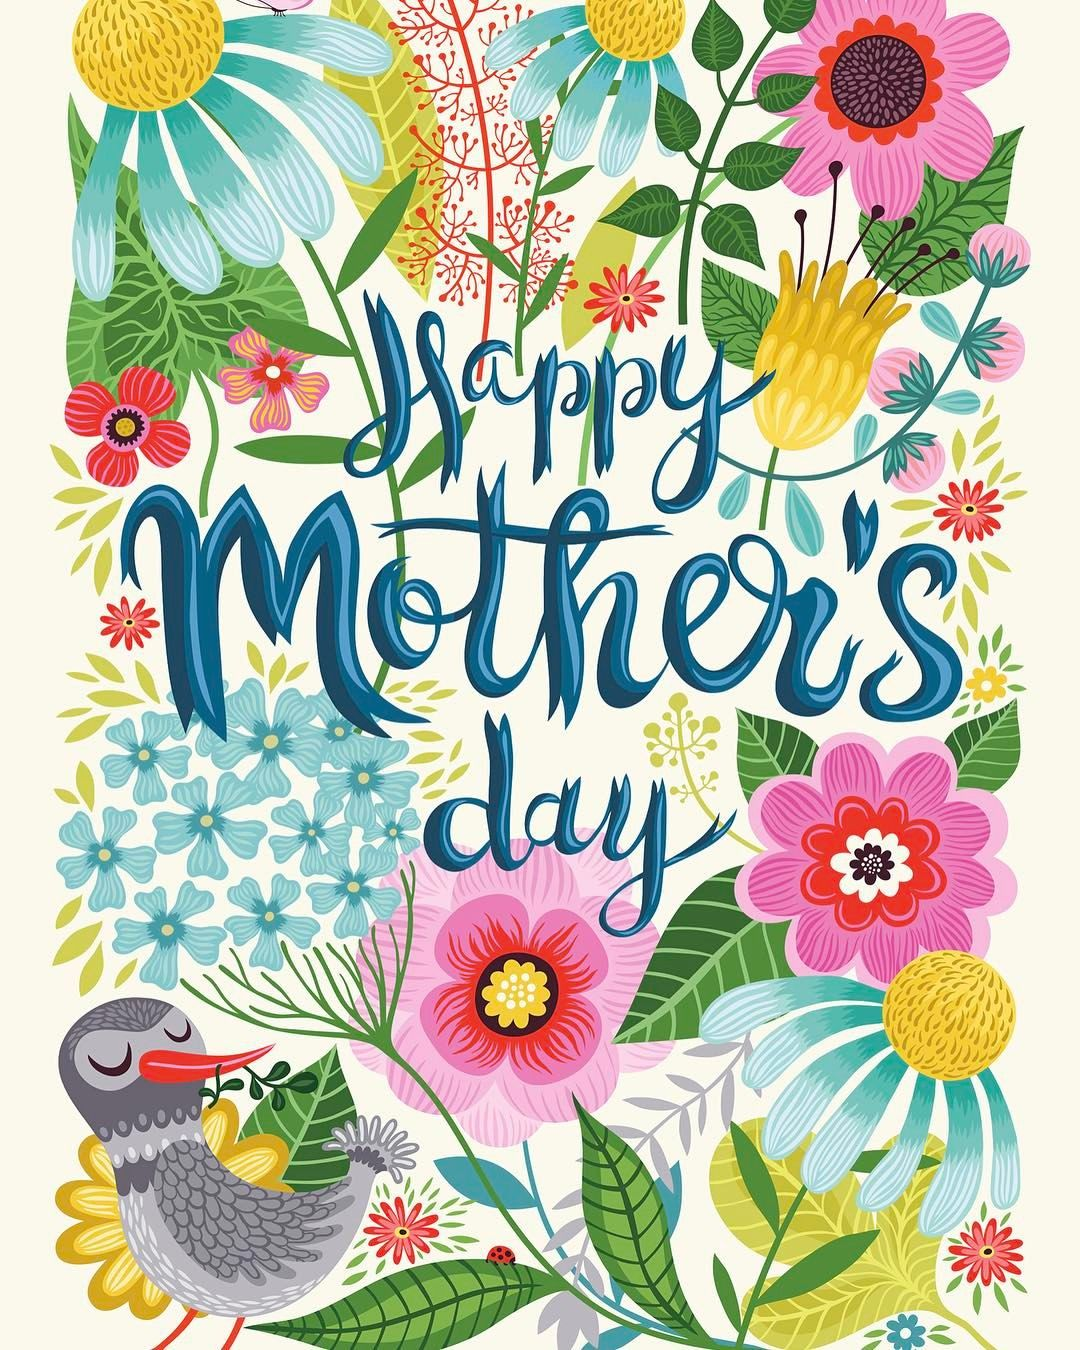 Happy Mother S Day To All The Moms But Especially To My Mom Larisadardik Happy Mothers Day Pictures Happy Mothers Day Wishes Happy Mother Day Quotes